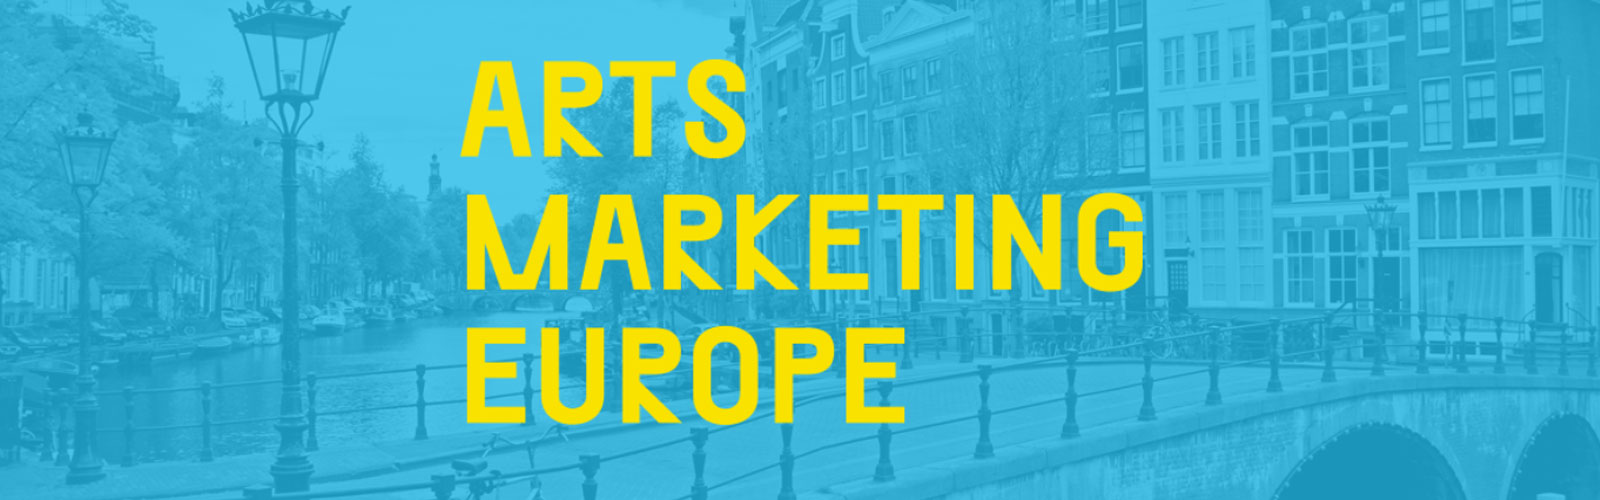 arts-marketing-europe-amsterdam